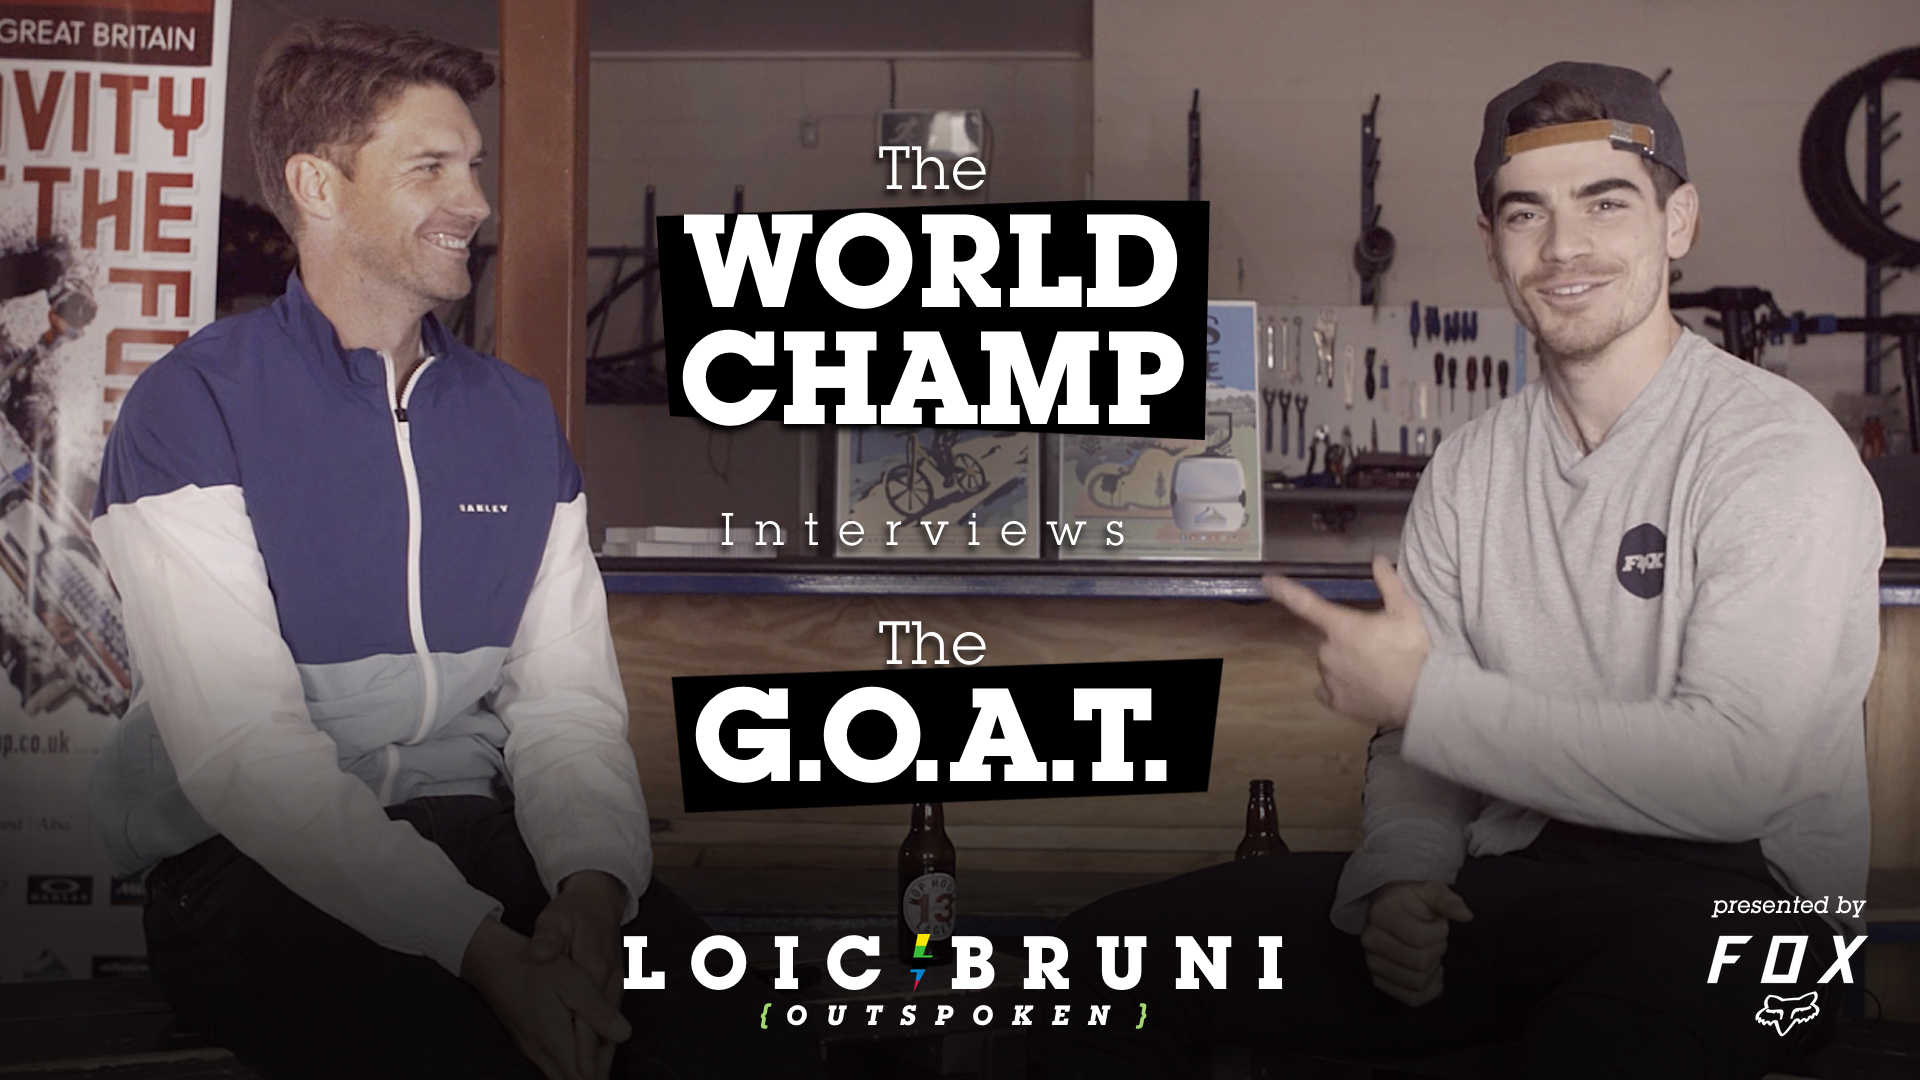 The WORLD CHAMP Interviews the G.O.A.T. - Loic Bruni and Greg Minnaar Get Personal